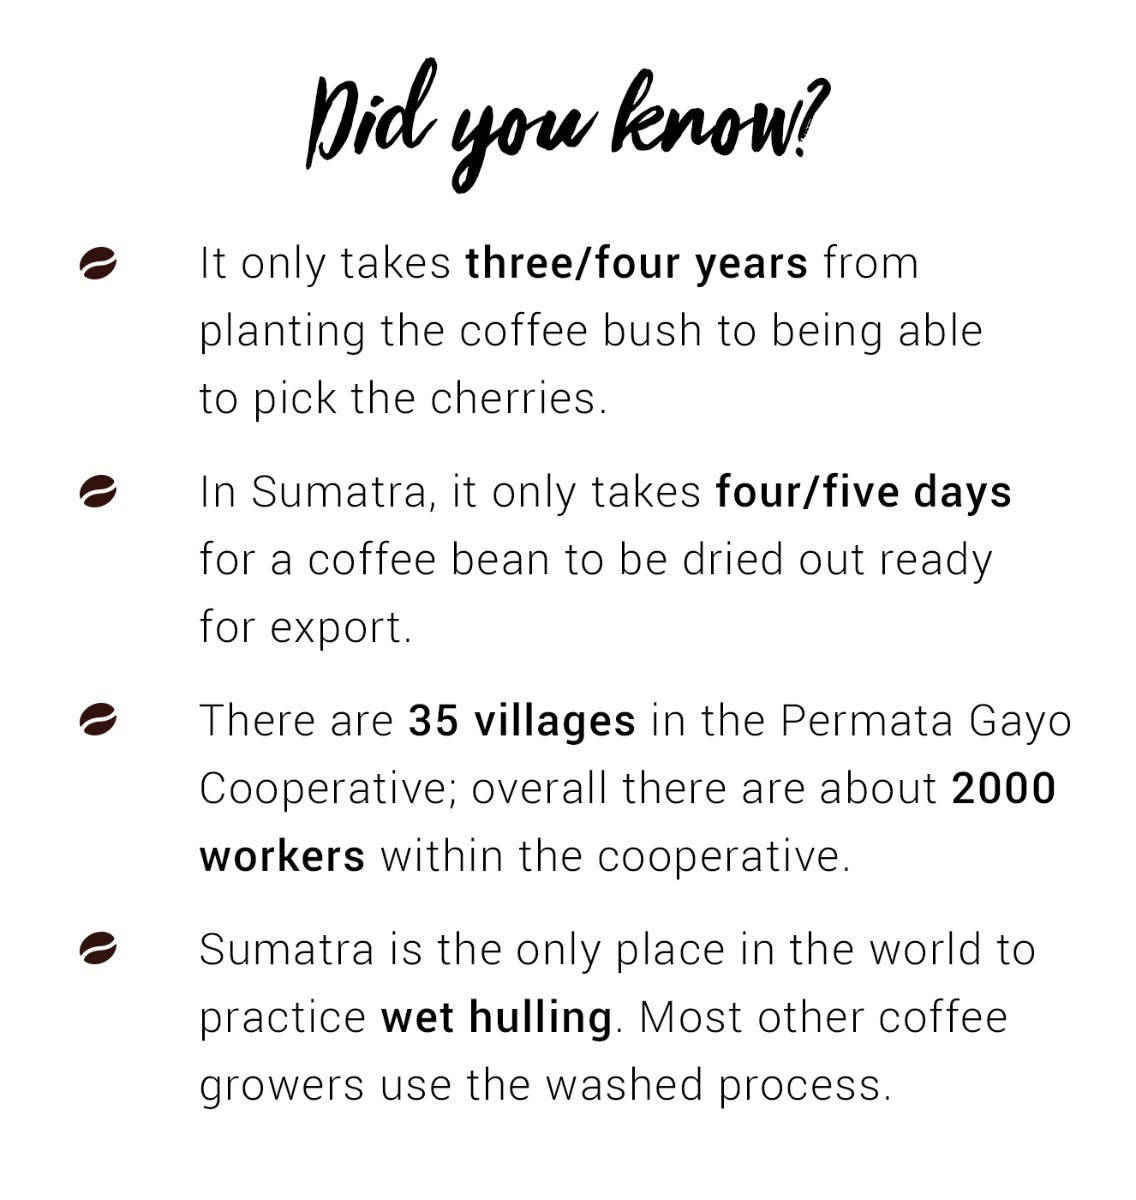 Did you know? Facts about Sumatra coffee